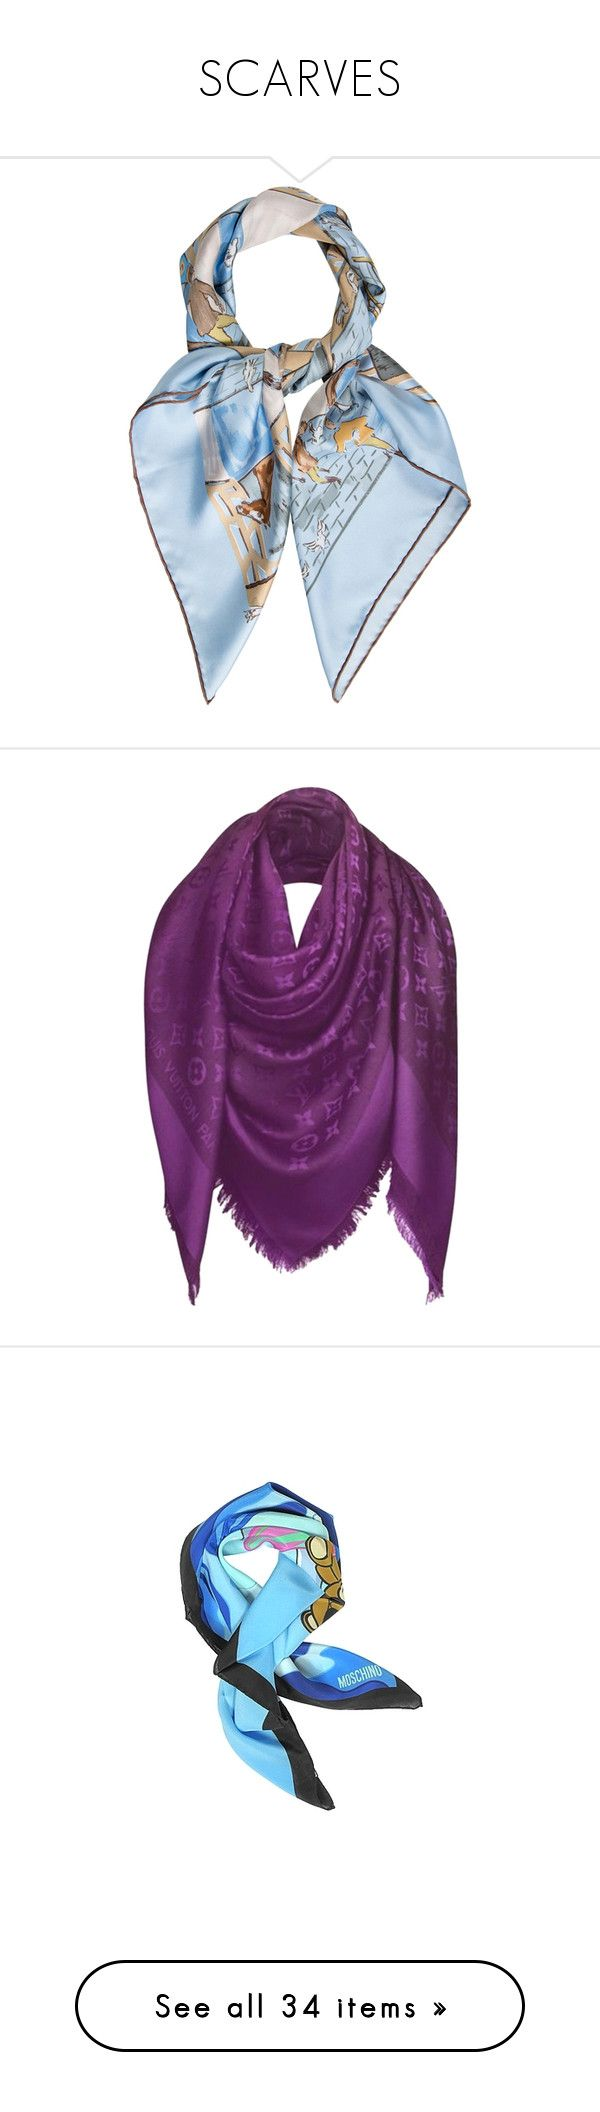 """""""SCARVES"""" by katya-ukraine on Polyvore featuring accessories, scarves, blue, colorful scarves, hermes scarves, hermes shawl, colorful shawl, blue scarves, cassis и louis vuitton scarves"""